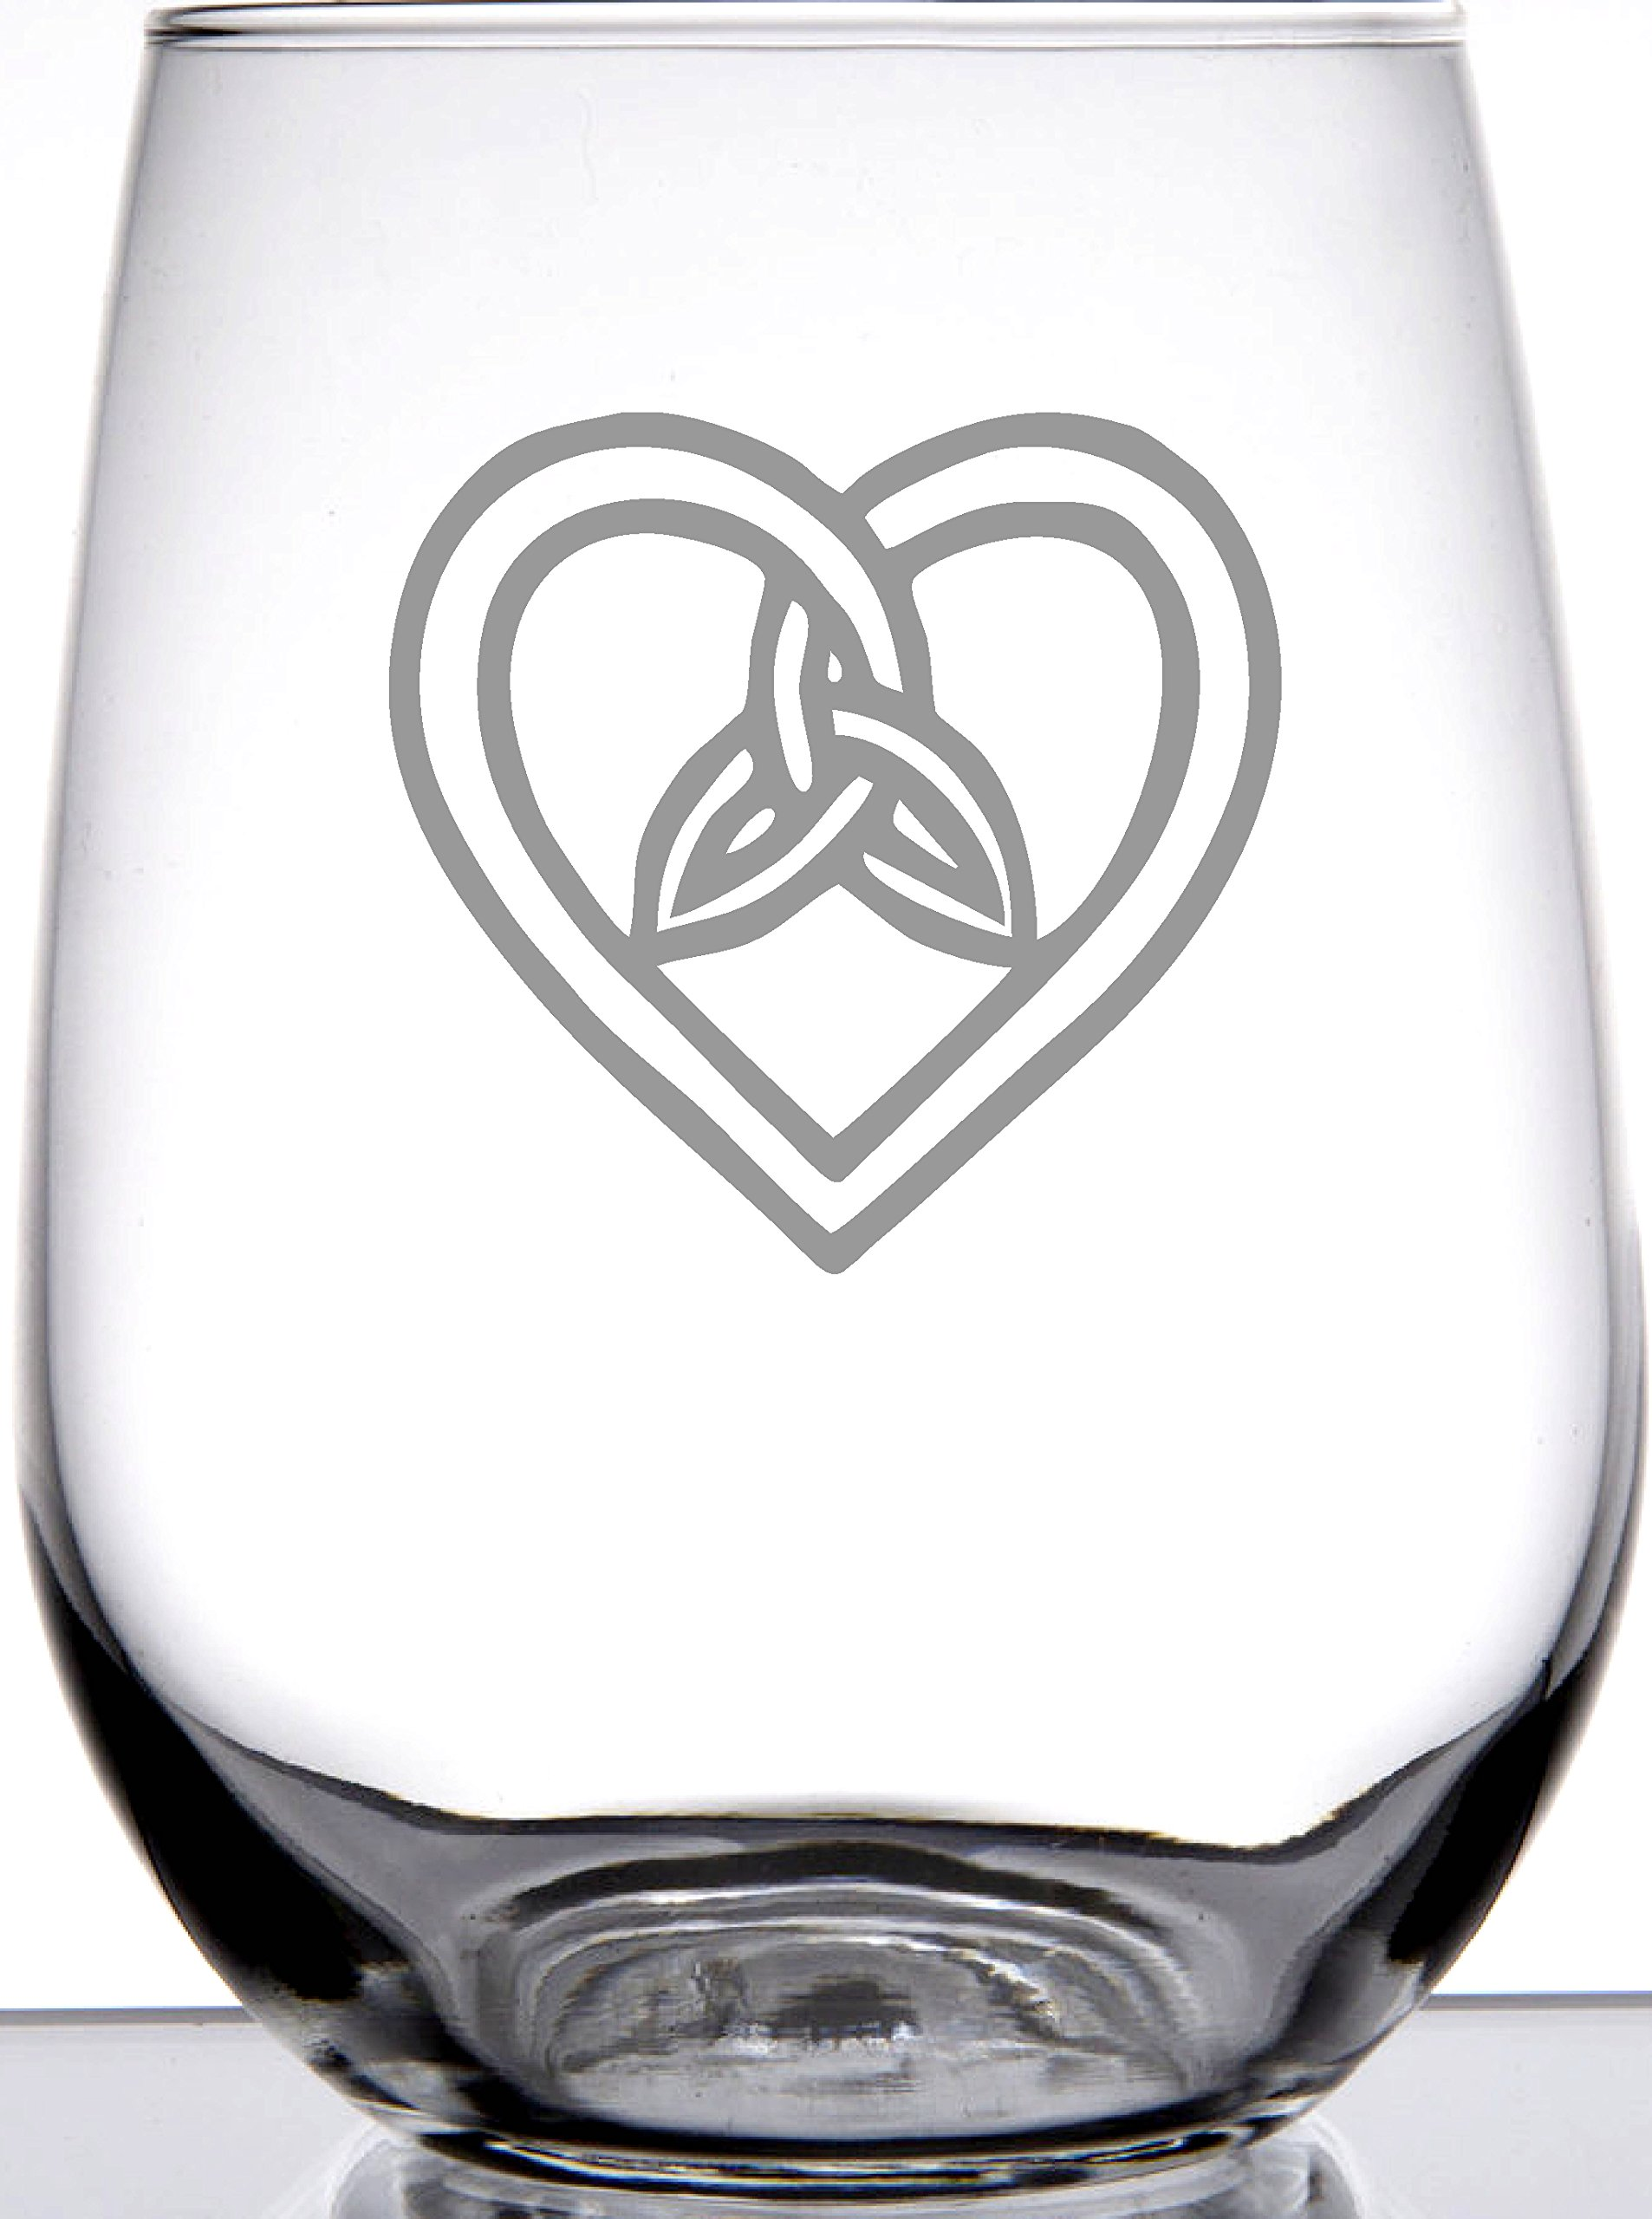 IE Laserware Irish Celtic Heart and Trinity Knot Laser Etched Engraved Wine Glass, 17 Ounce Stemless Wine Glass, Great Irish Gift